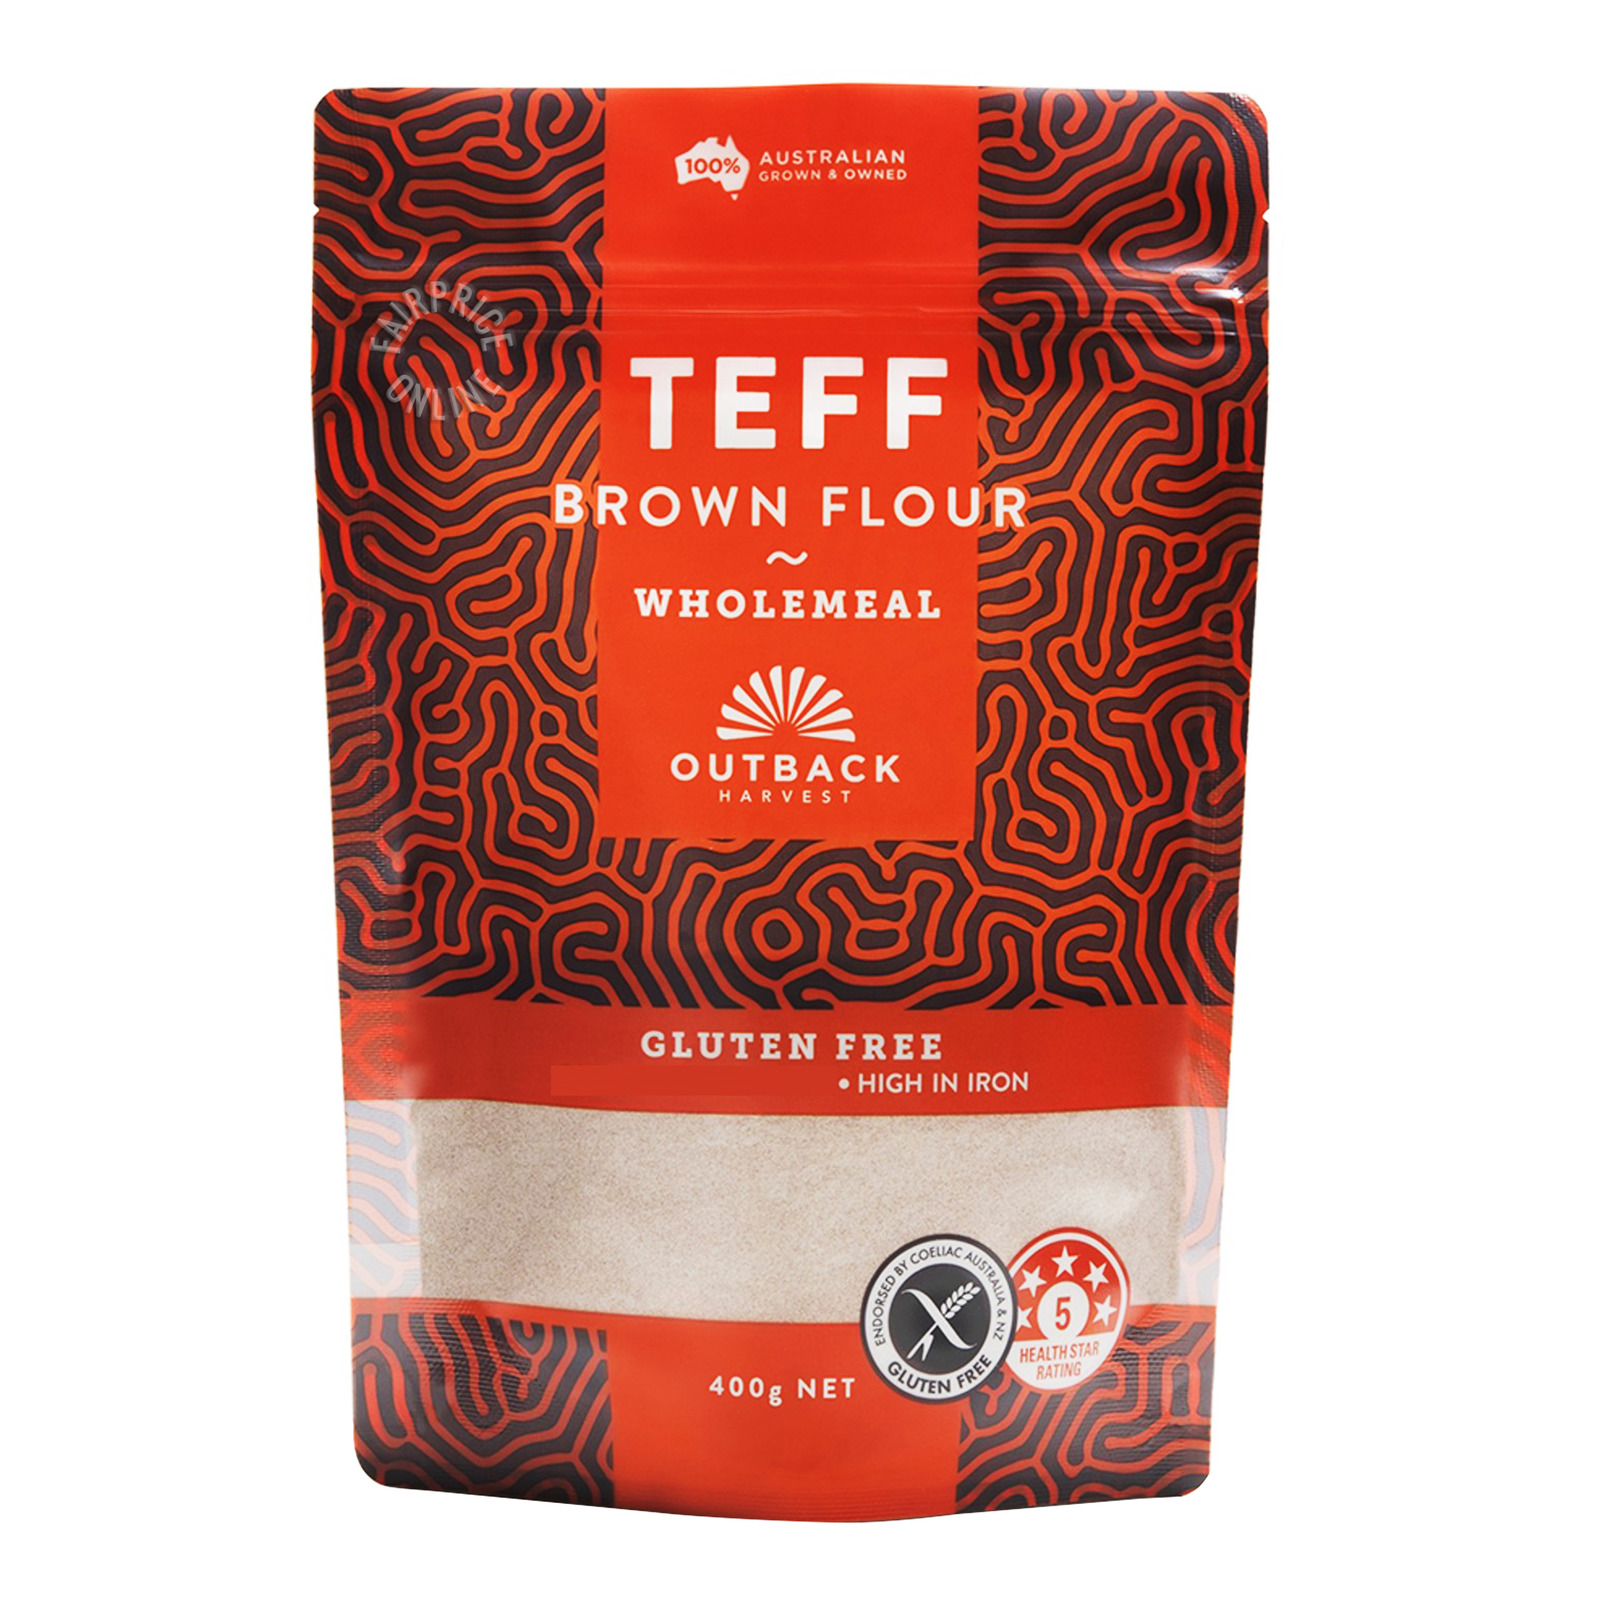 Outback Harvest Teff Wholemeal Flour - Brown